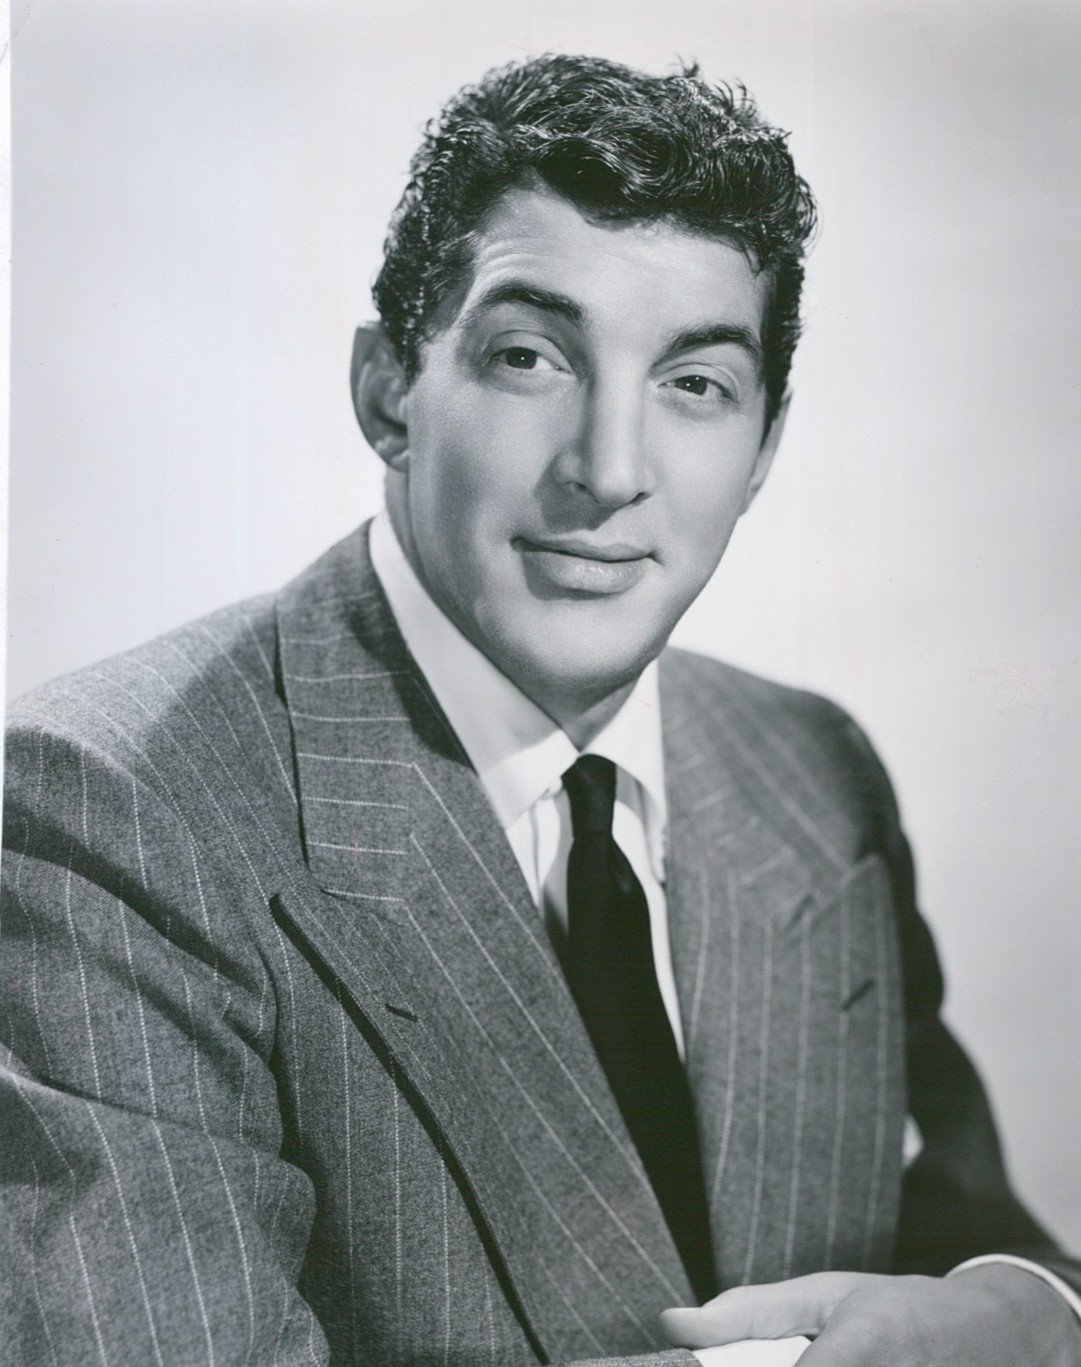 Dean Martin when he began an NBC show with Jerry Lewis. Photo: Getty Images